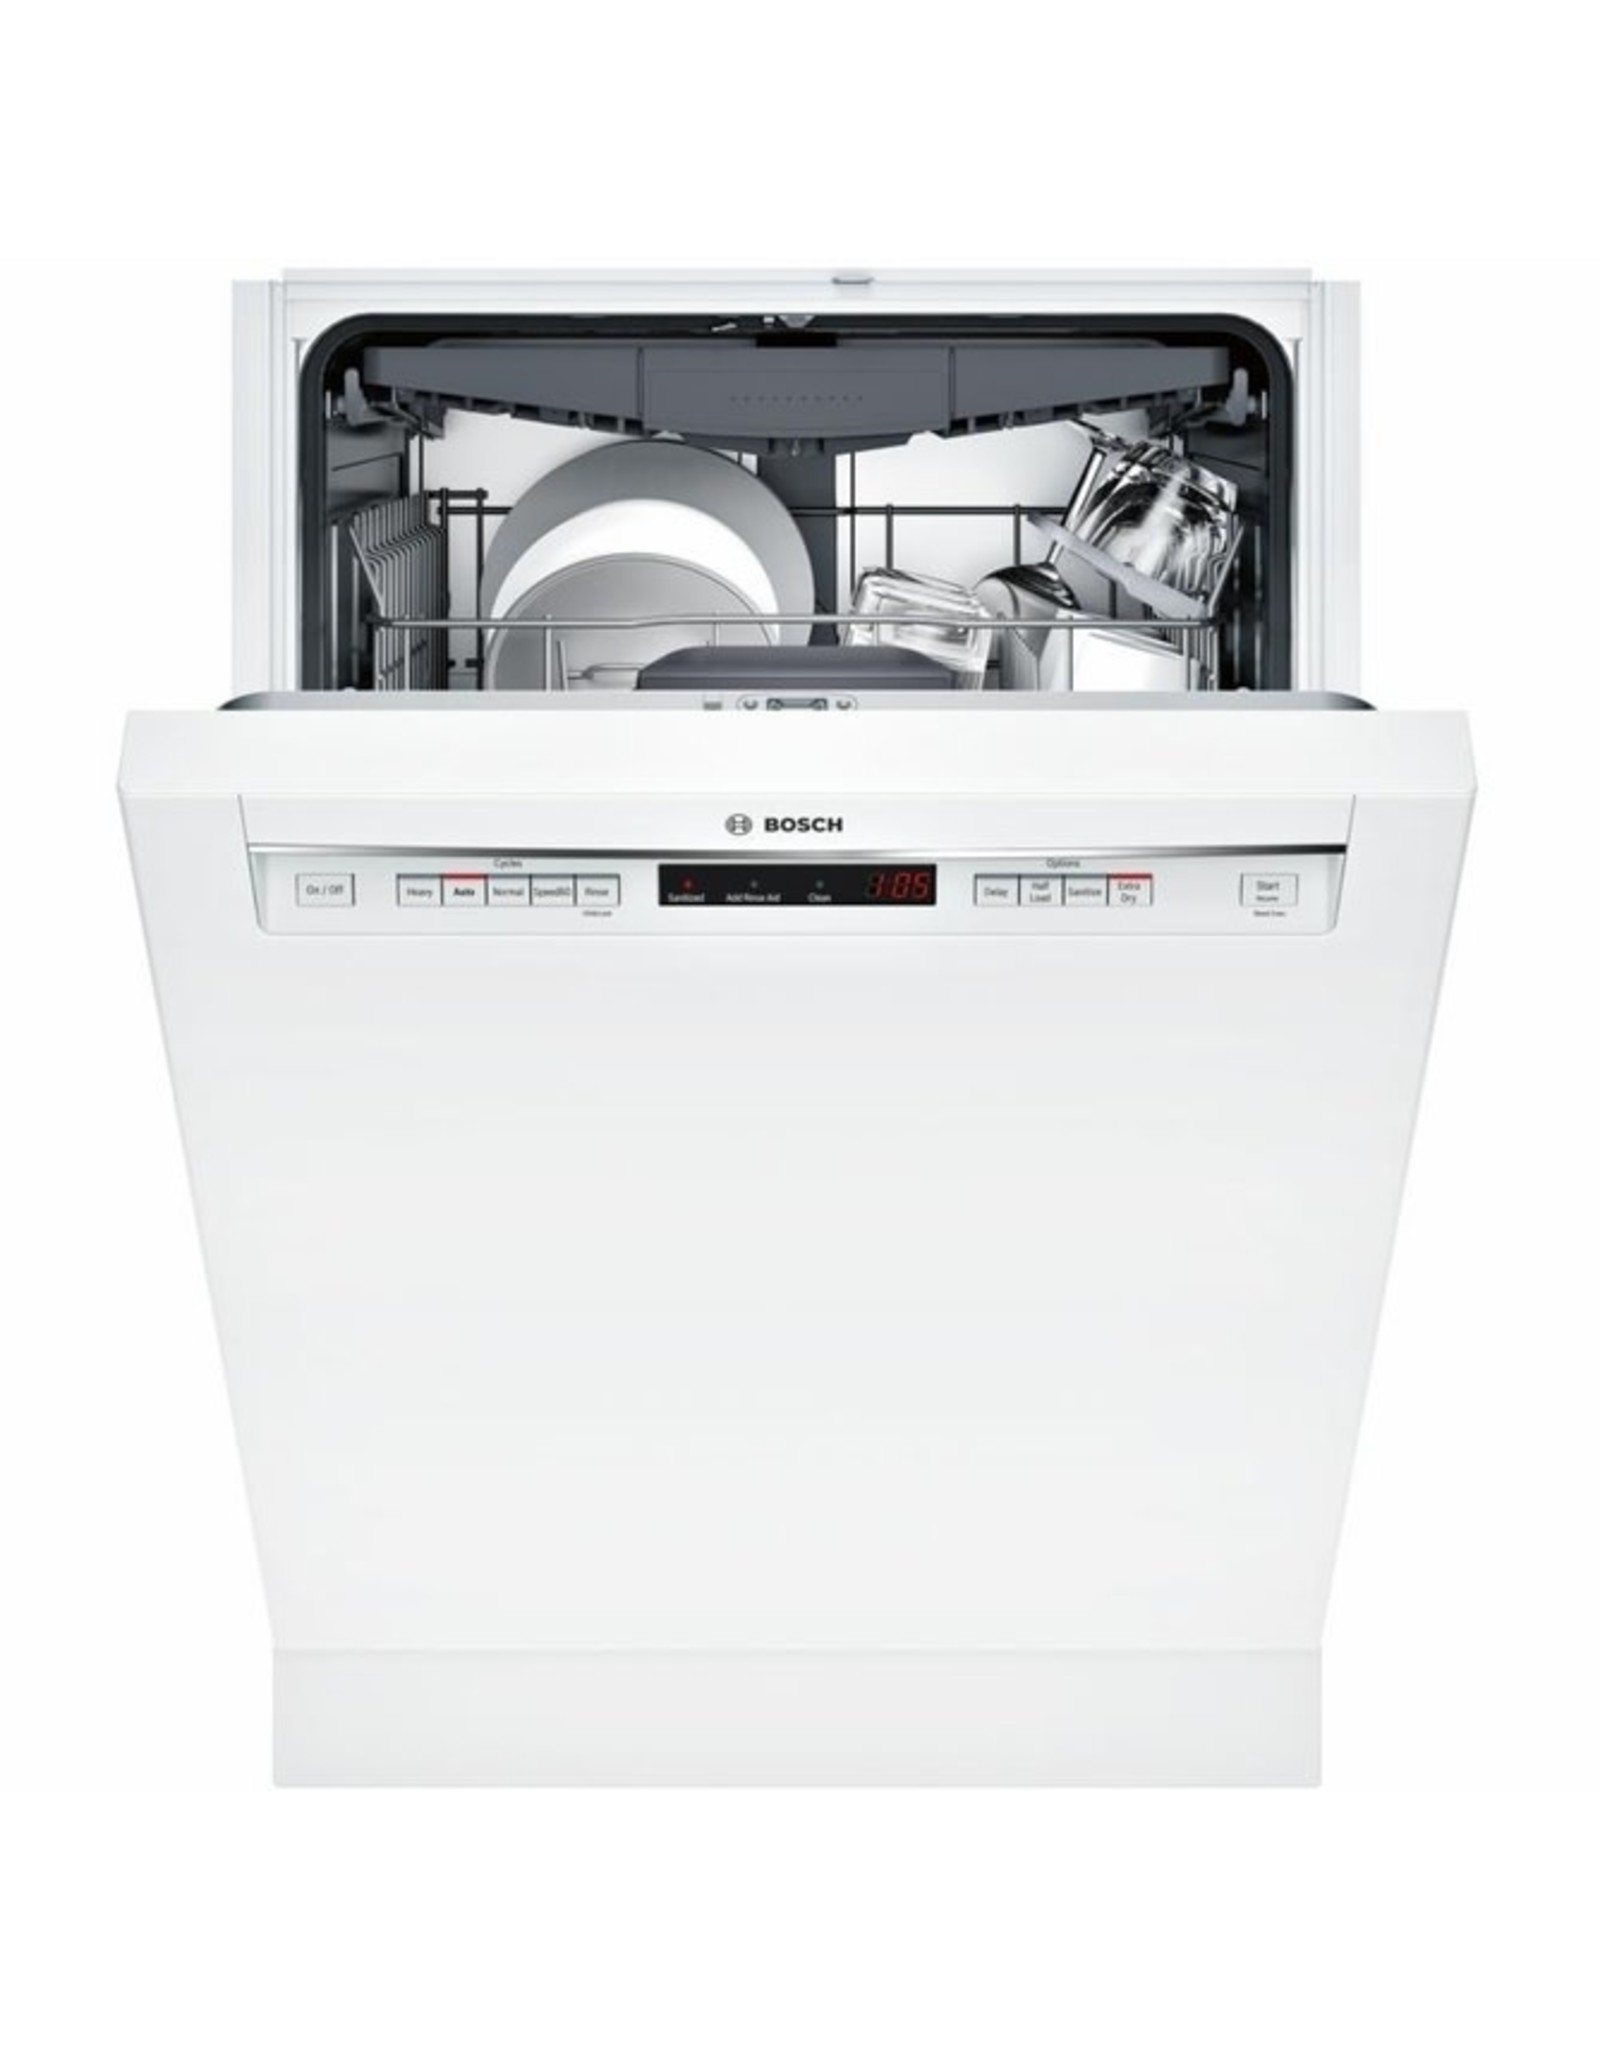 BOSCH SHEM63W52N  300 Series 24 in. White Front Control Tall Tub Dishwasher with Stainless Steel Tub and 3rd Rack, 44dBA